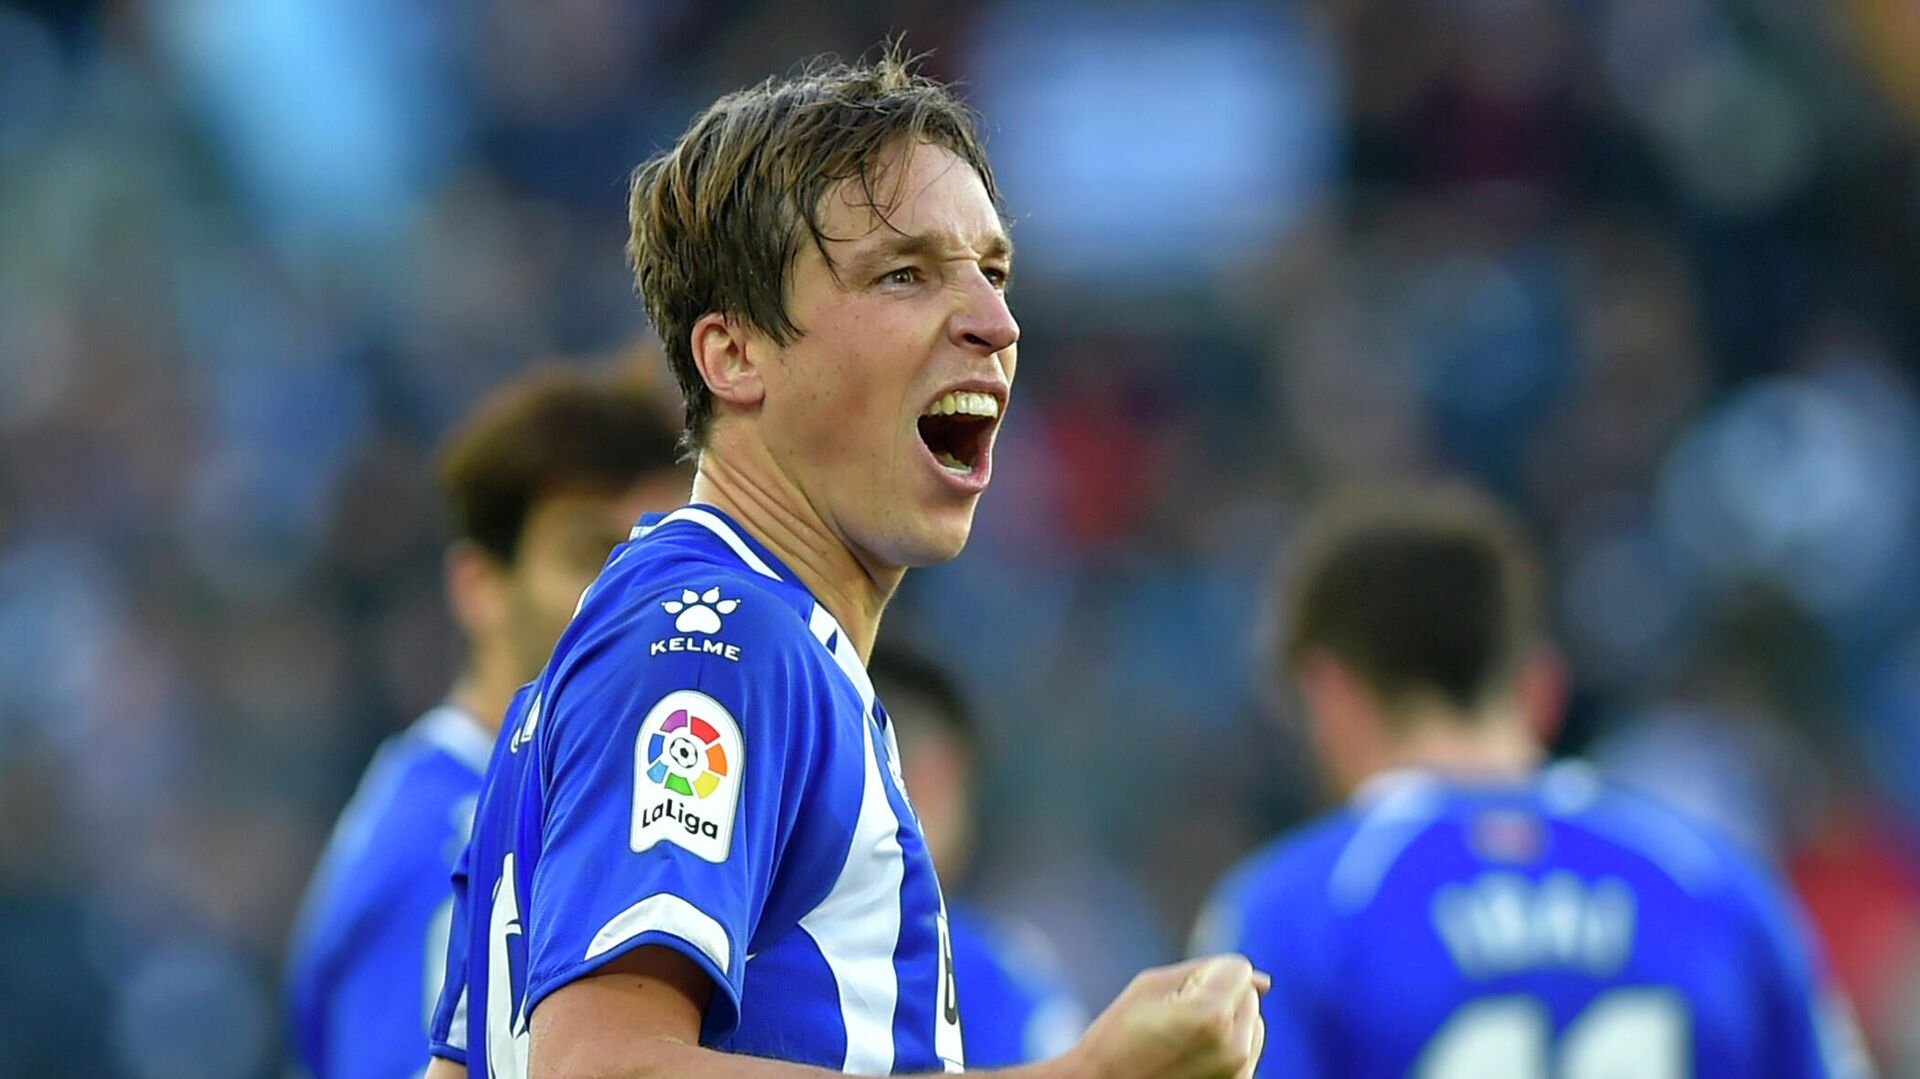 Alaves' Spanish midfielder Tomas Pina celebrates after scoring his team's second goal during the Spanish League football match between Deportivo Alaves and Valencia CF at the Mendizorroza stadium in Vitoria on January 5, 2019. (Photo by ANDER GILLENEA / AFP) - РИА Новости, 1920, 25.10.2020